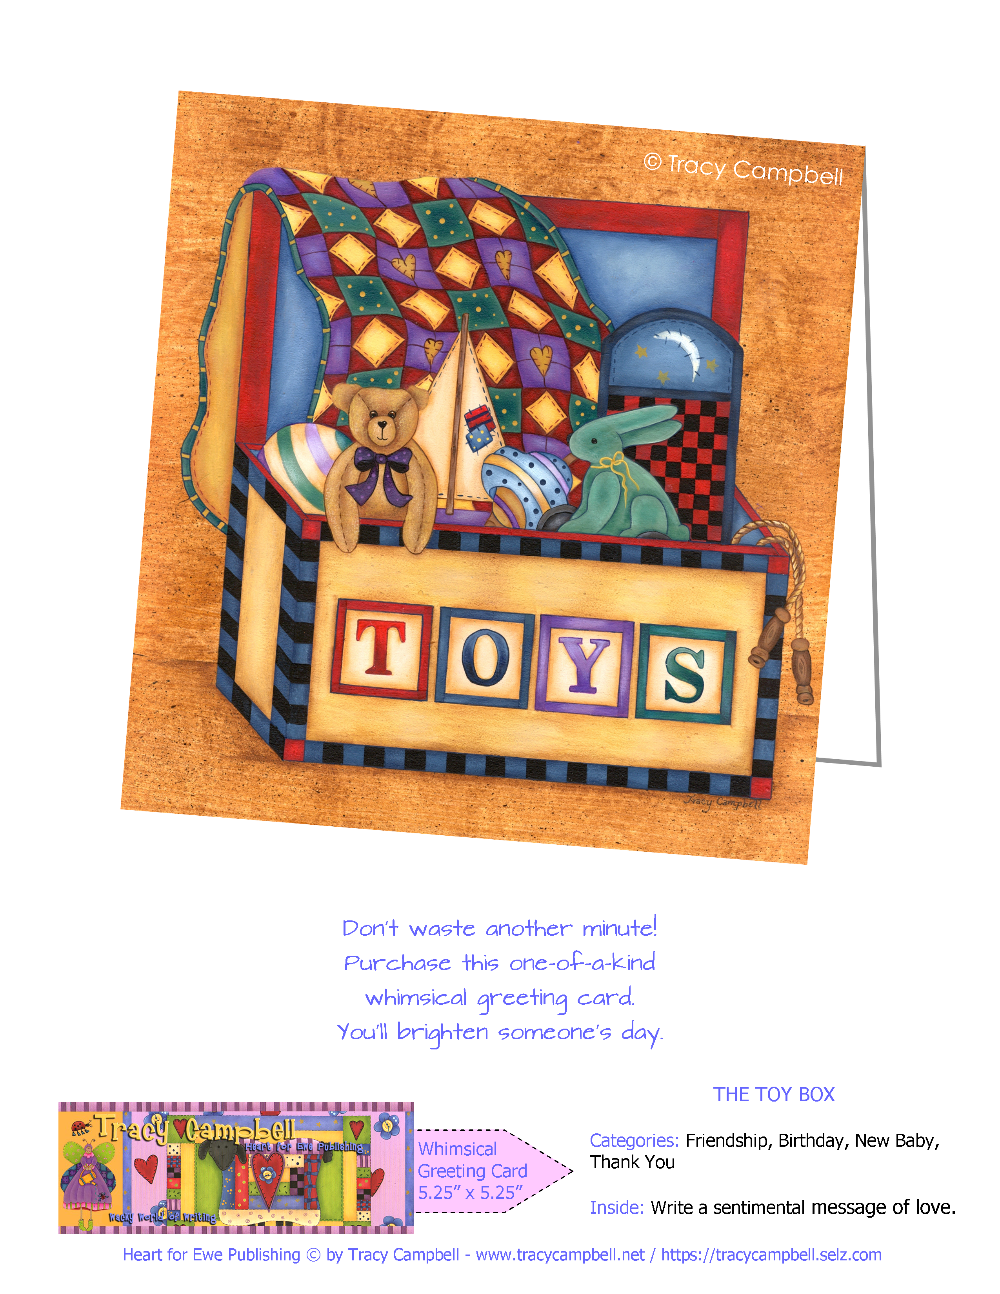 THE TOY BOX GREETING CARD